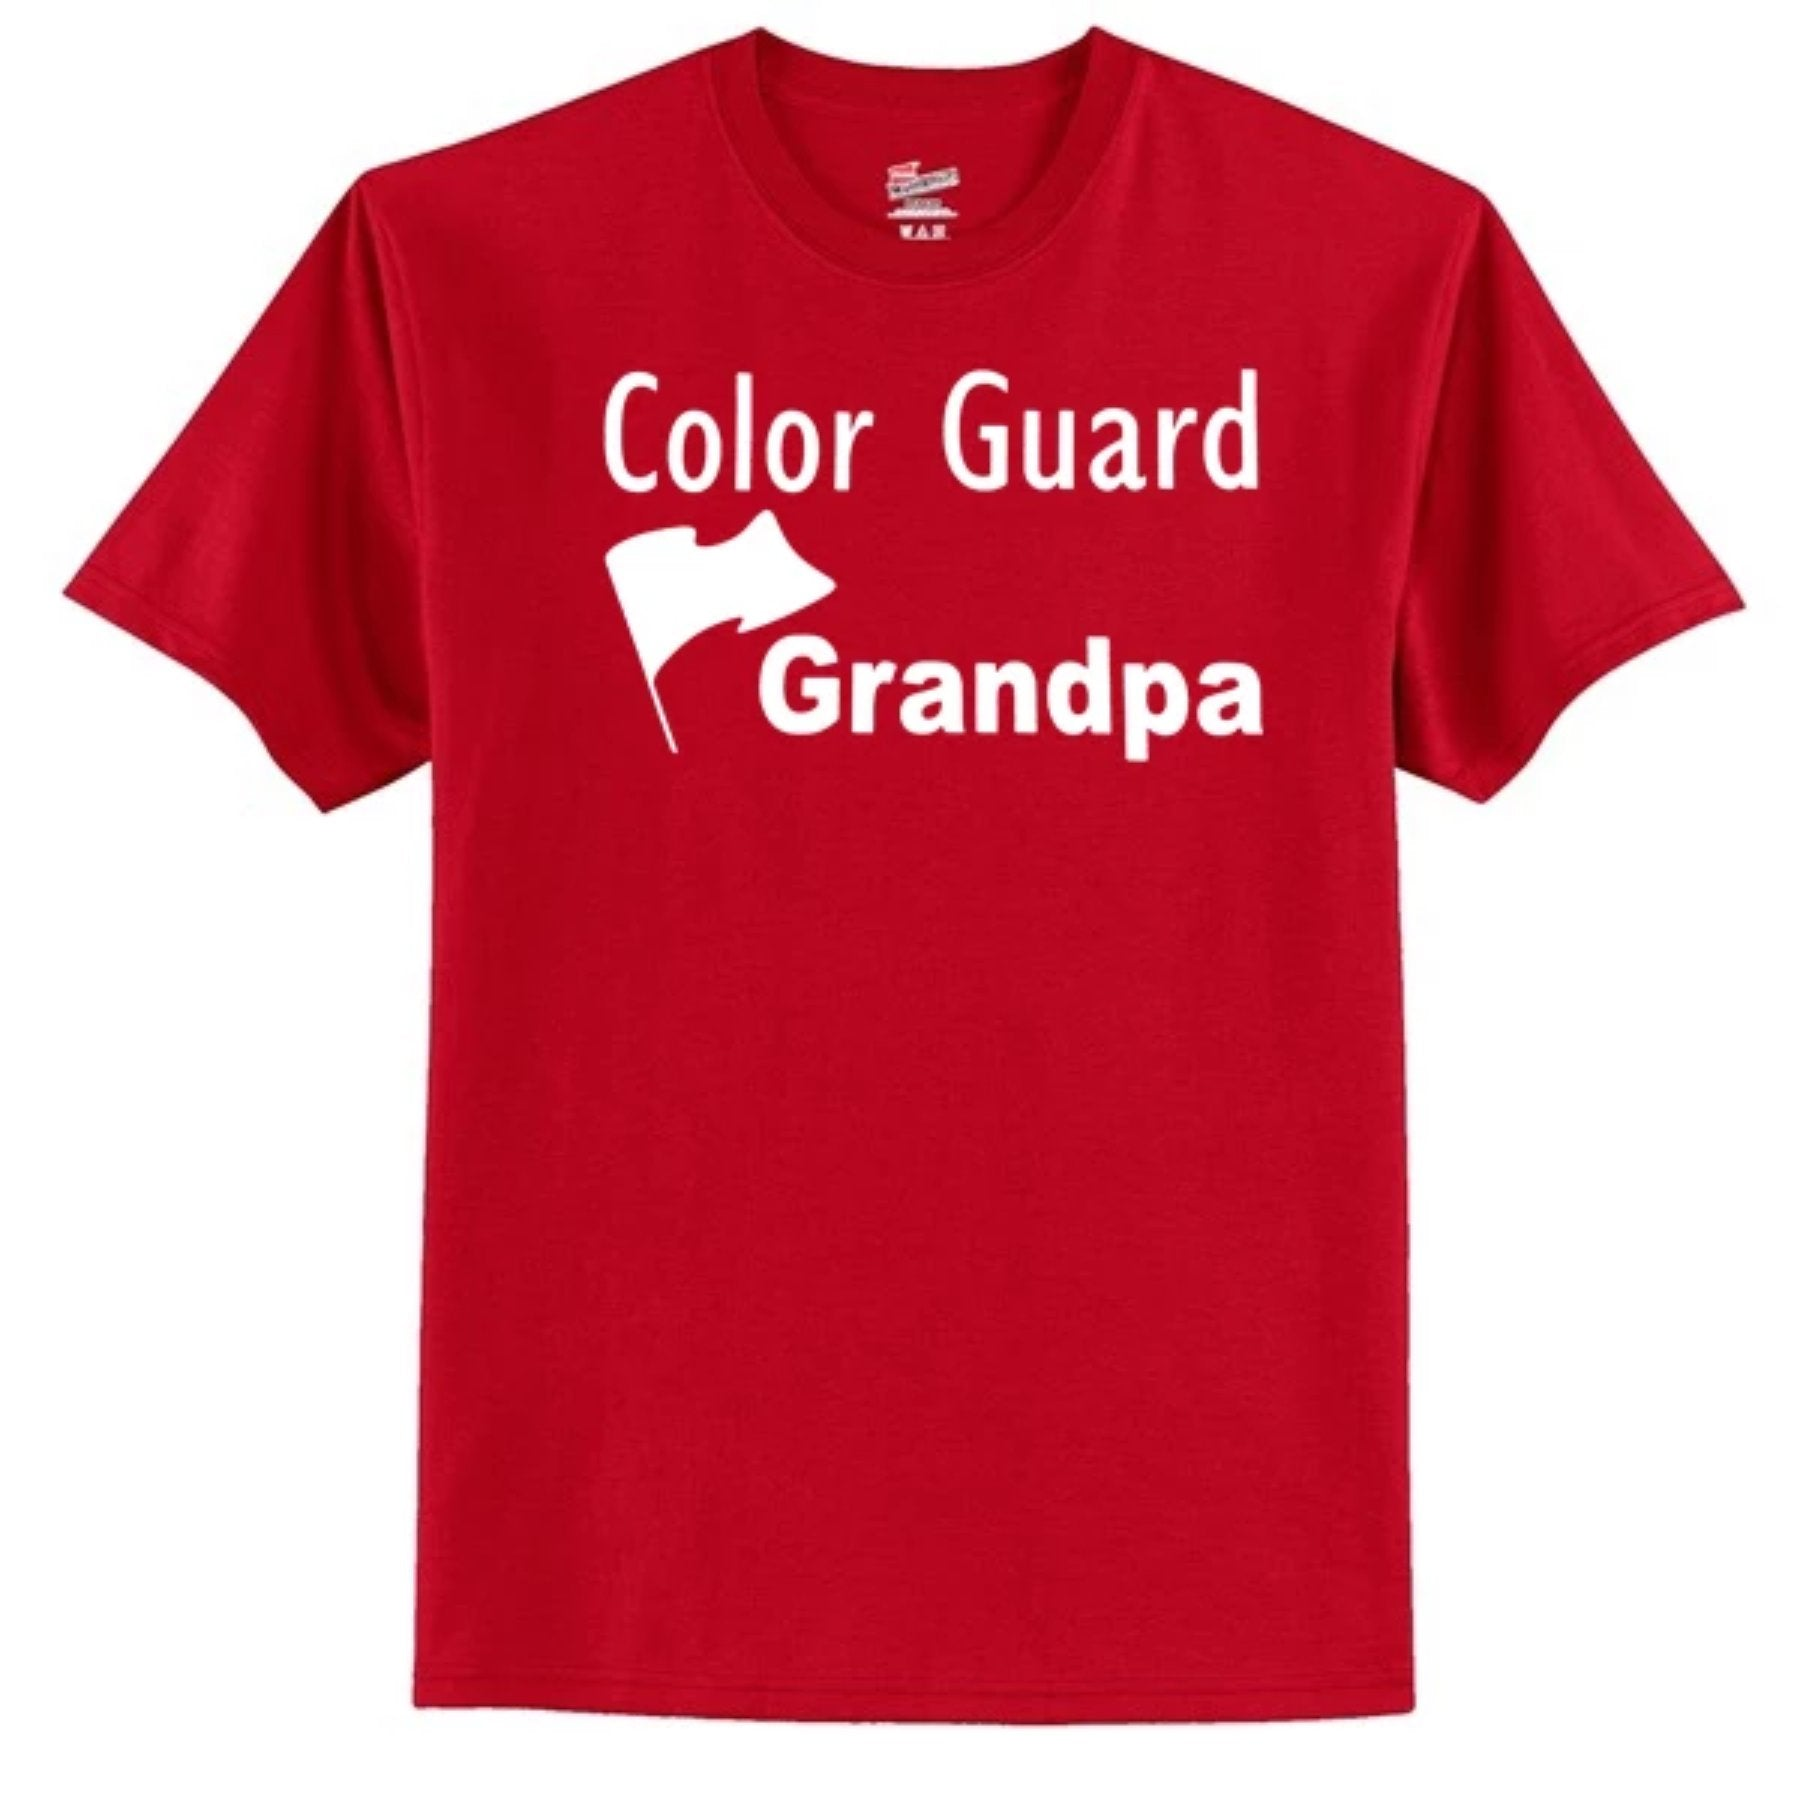 Color Guard Grandpa T-Shirt